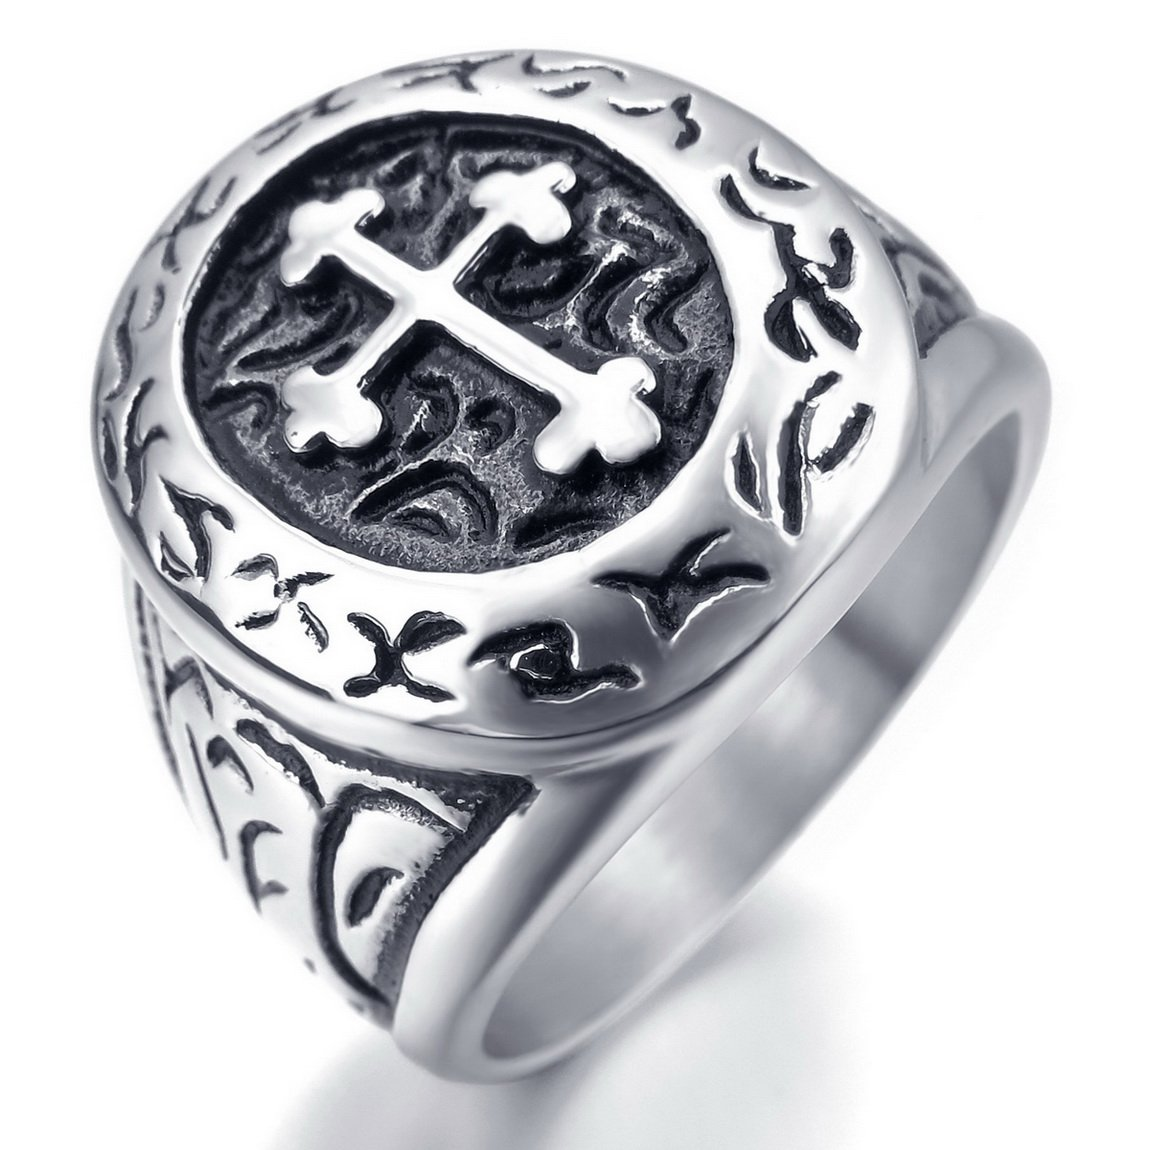 INBLUE Men's Stainless Steel Ring Silver Tone Black Cross Oval Size10 by INBLUE (Image #1)